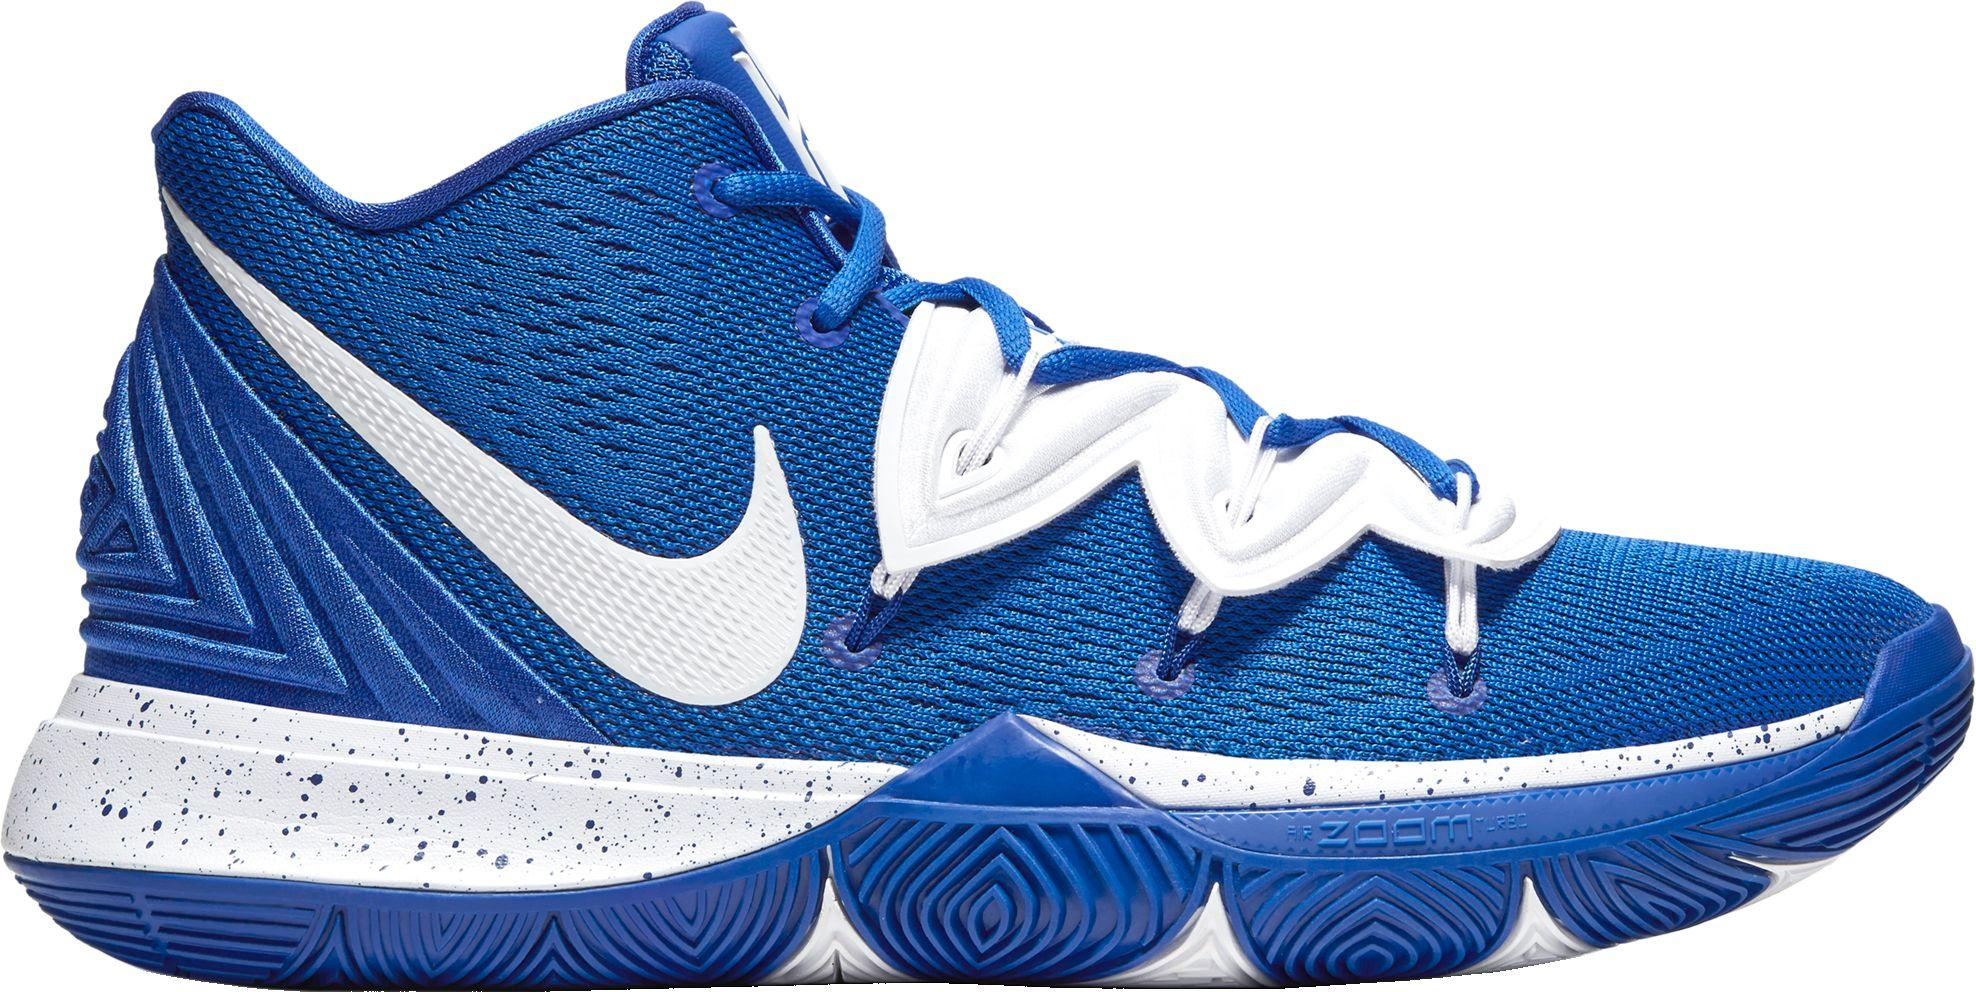 sustantivo golpear casamentero  kyrie 5 blue and white Sale Nike Basketball Shoes | Up to 65% Off Retail  Prices